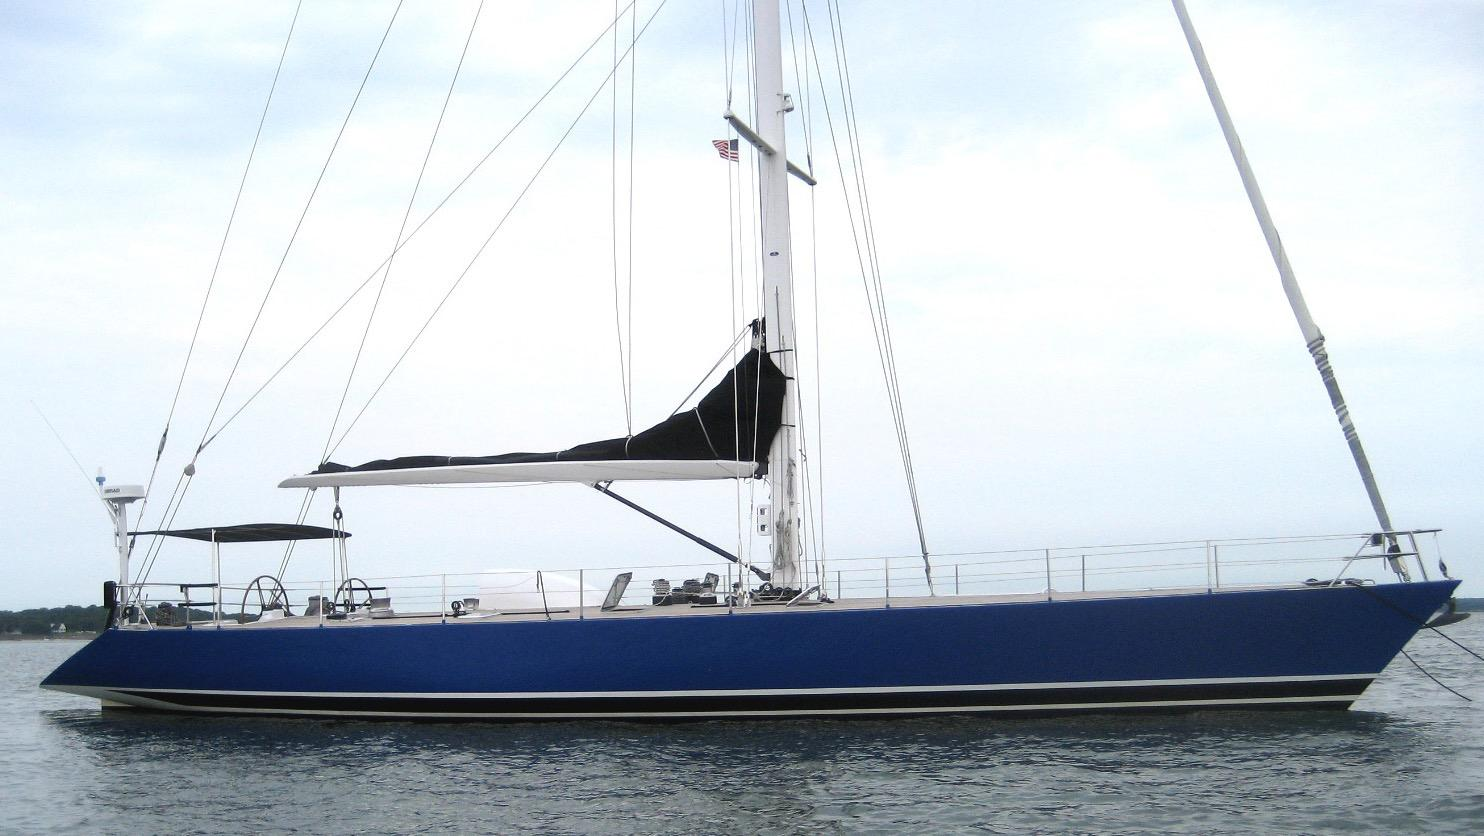 1984 Frers 71 Sail Boat For Sale Wwwyachtworldcom